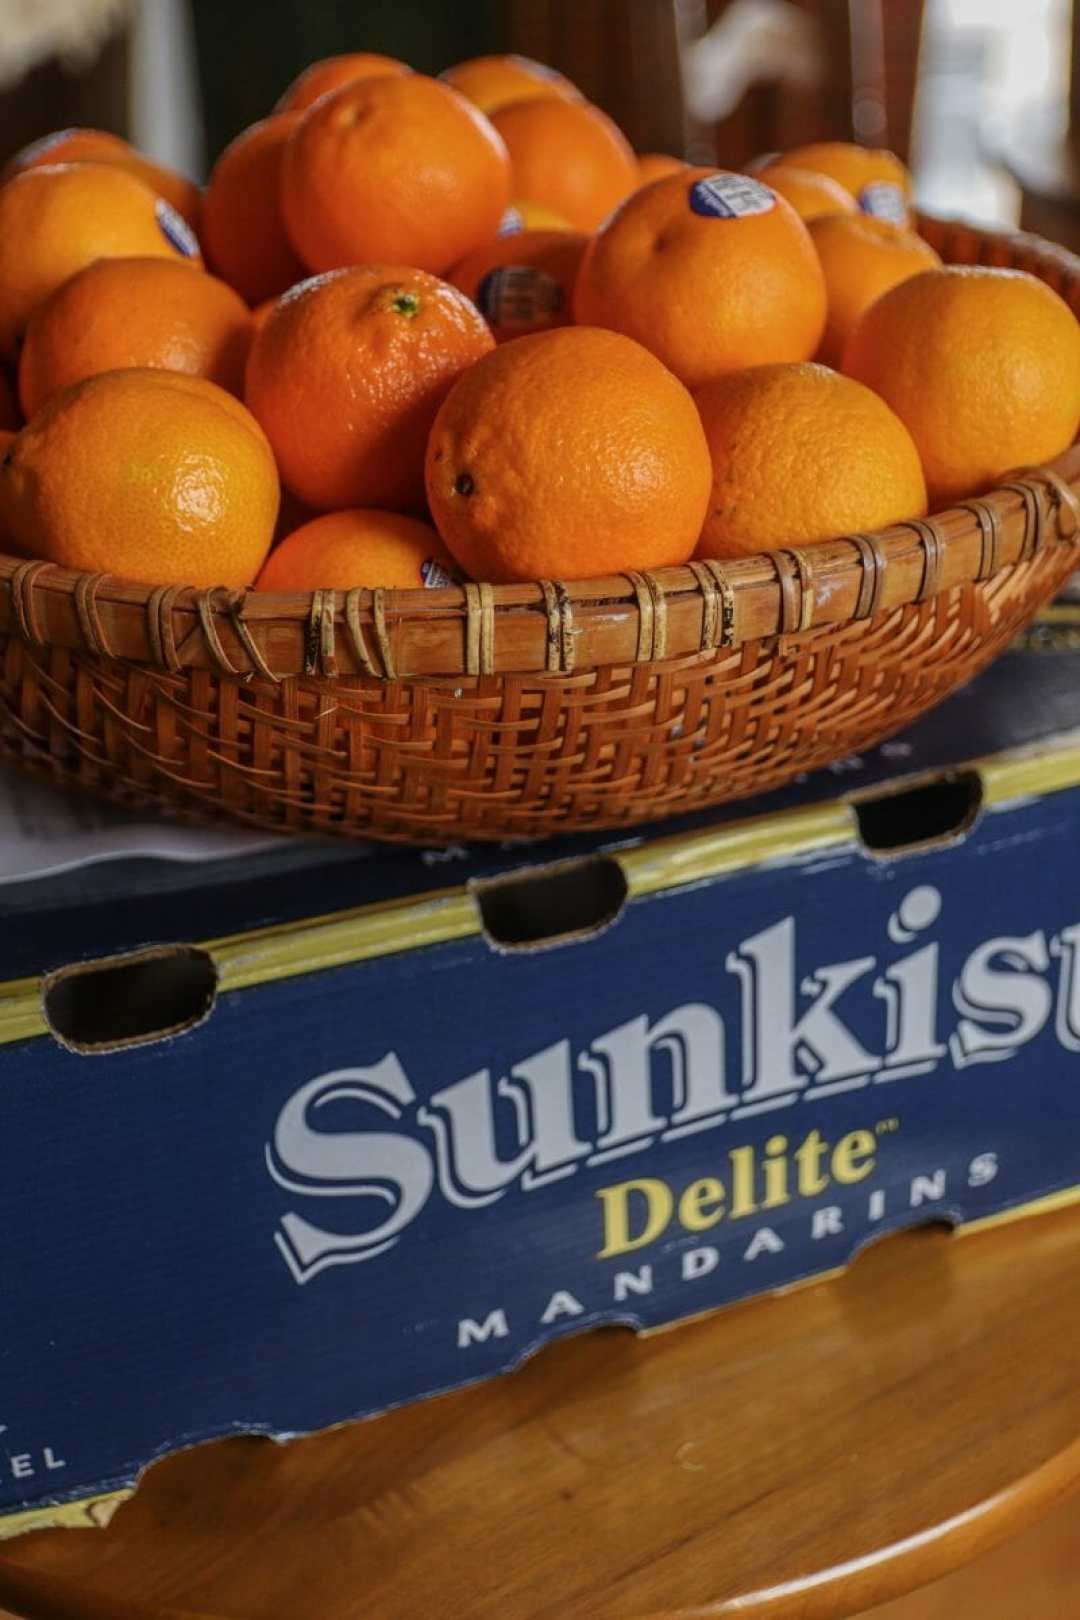 Sunkist Mandarin Oranges - The Best Recipes Using Fresh Oranges and Orange Juice by JC Phelps of JCP Eats, a Kentucky-based Food, Travel, and Lifestyle Blog